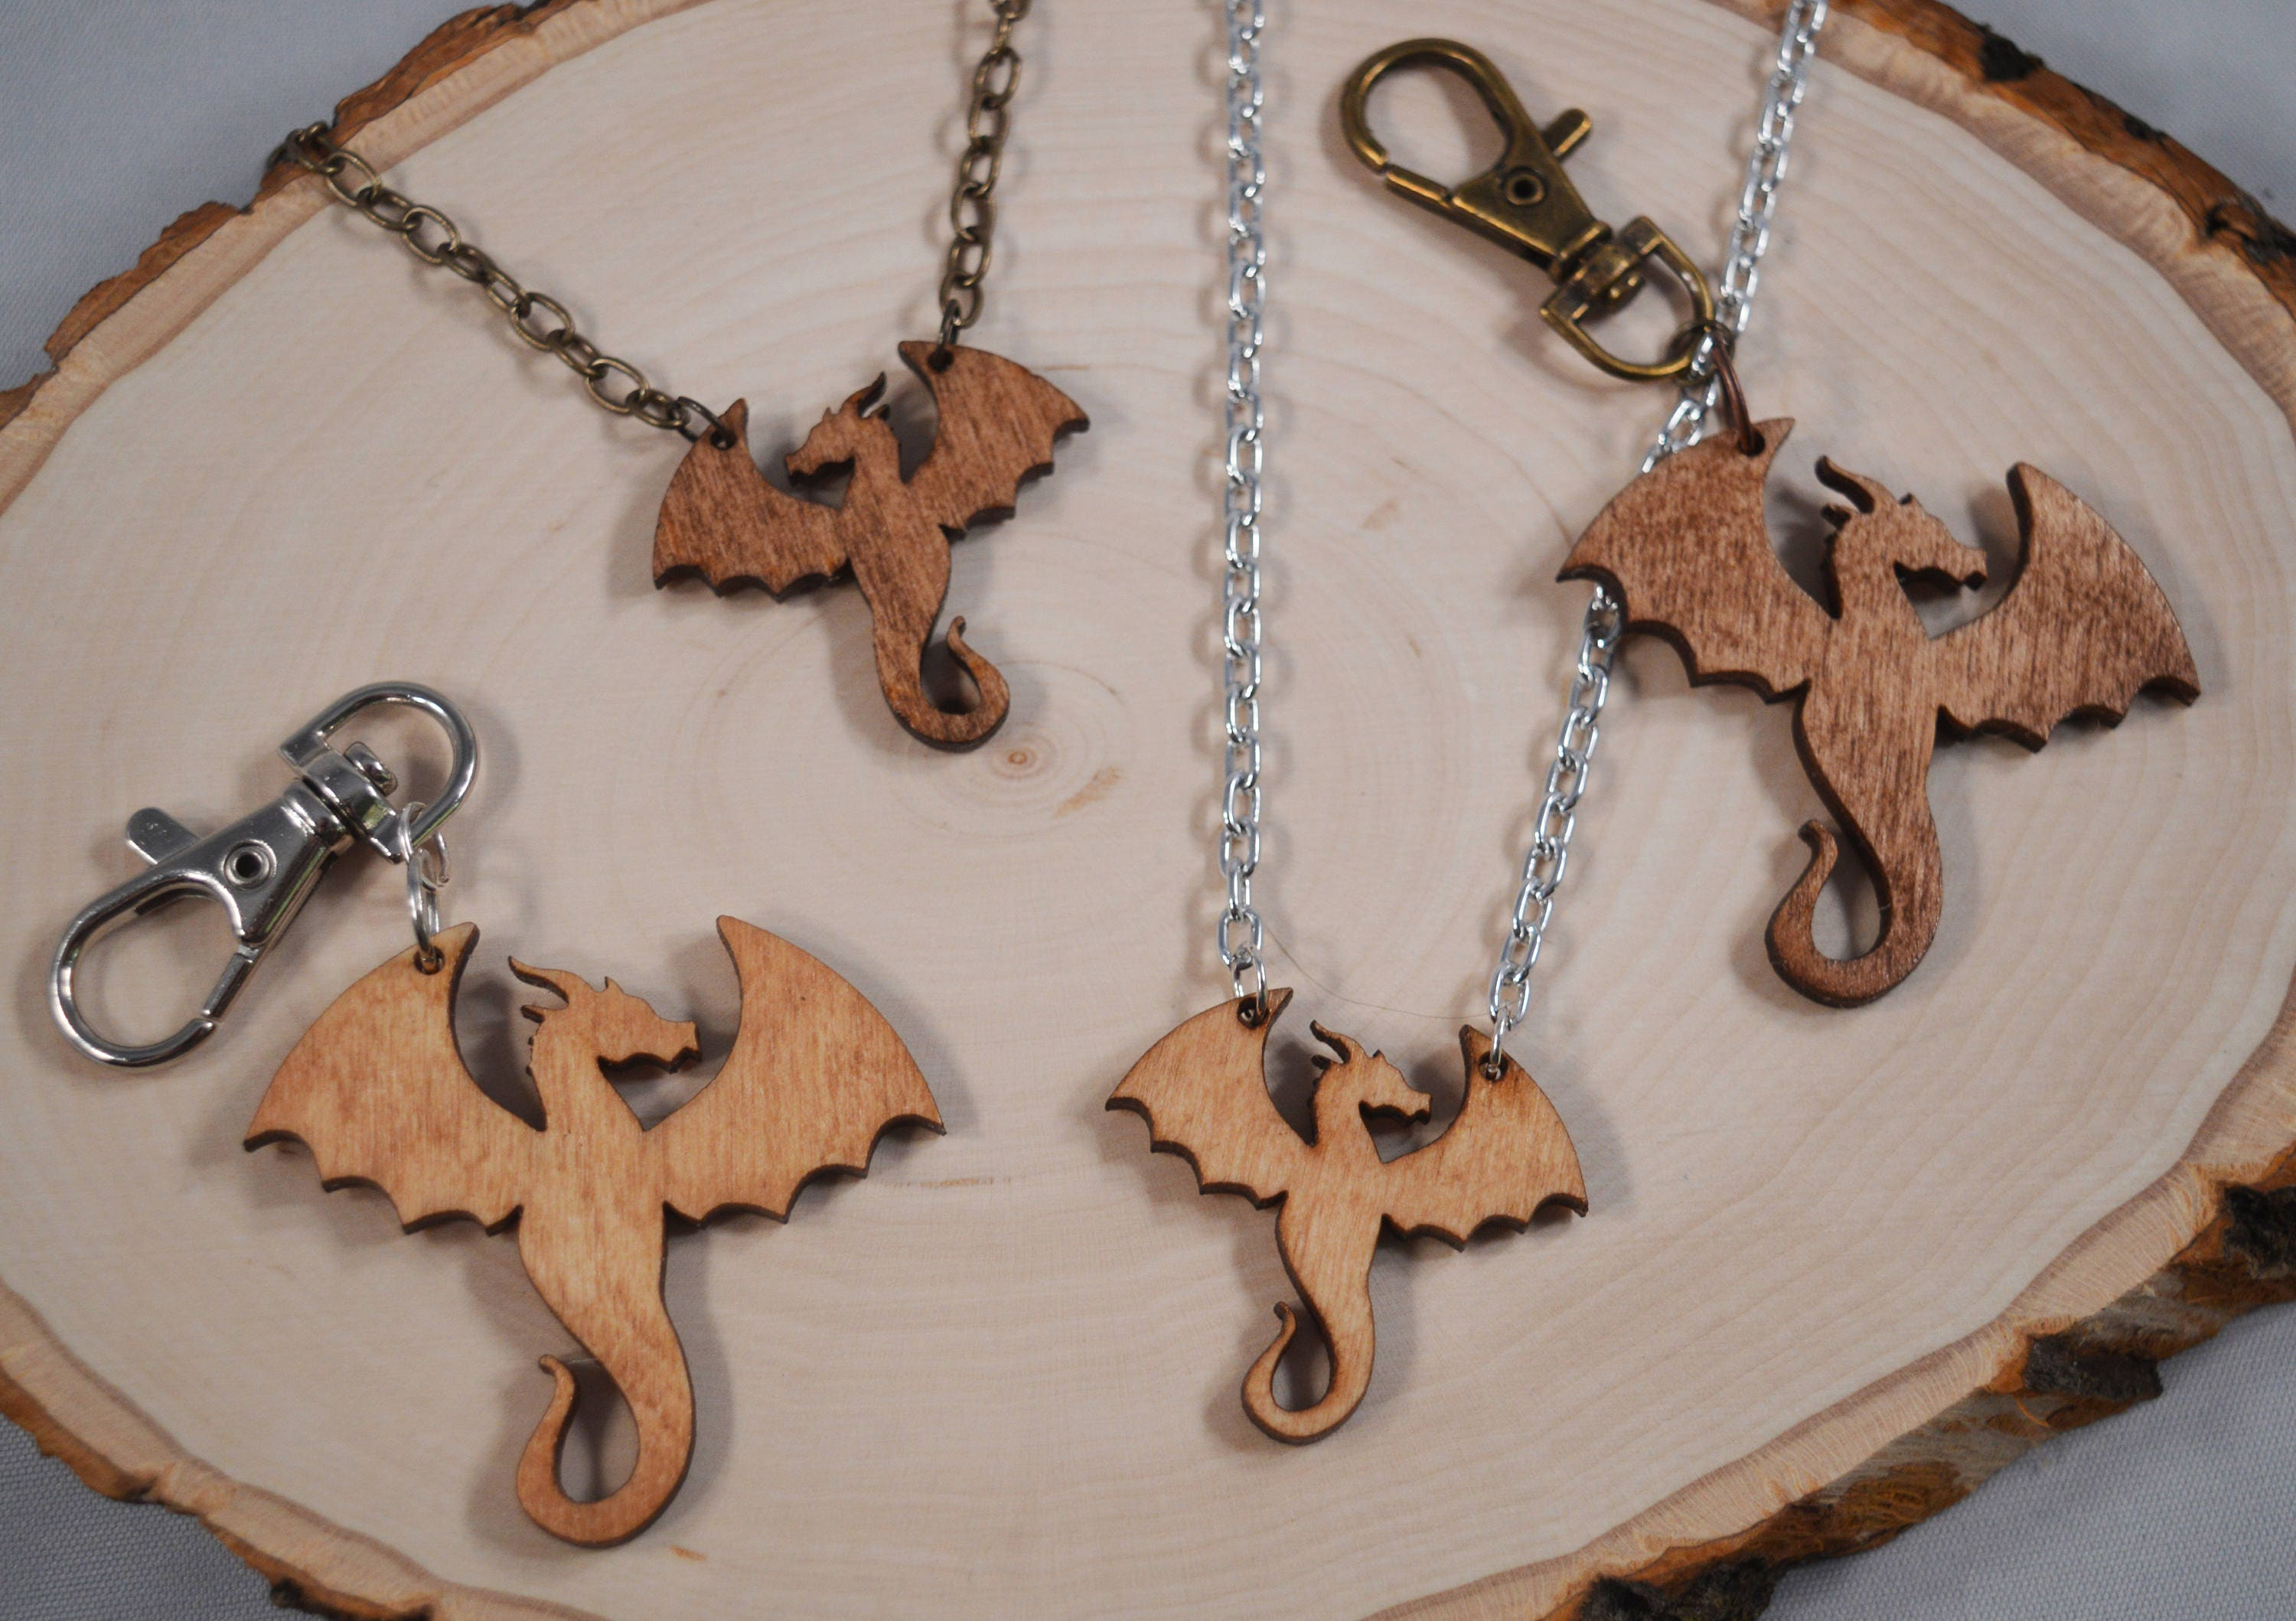 fullxfull pendant necklace wood keychain il and au fantasy chains listing dragon zoom